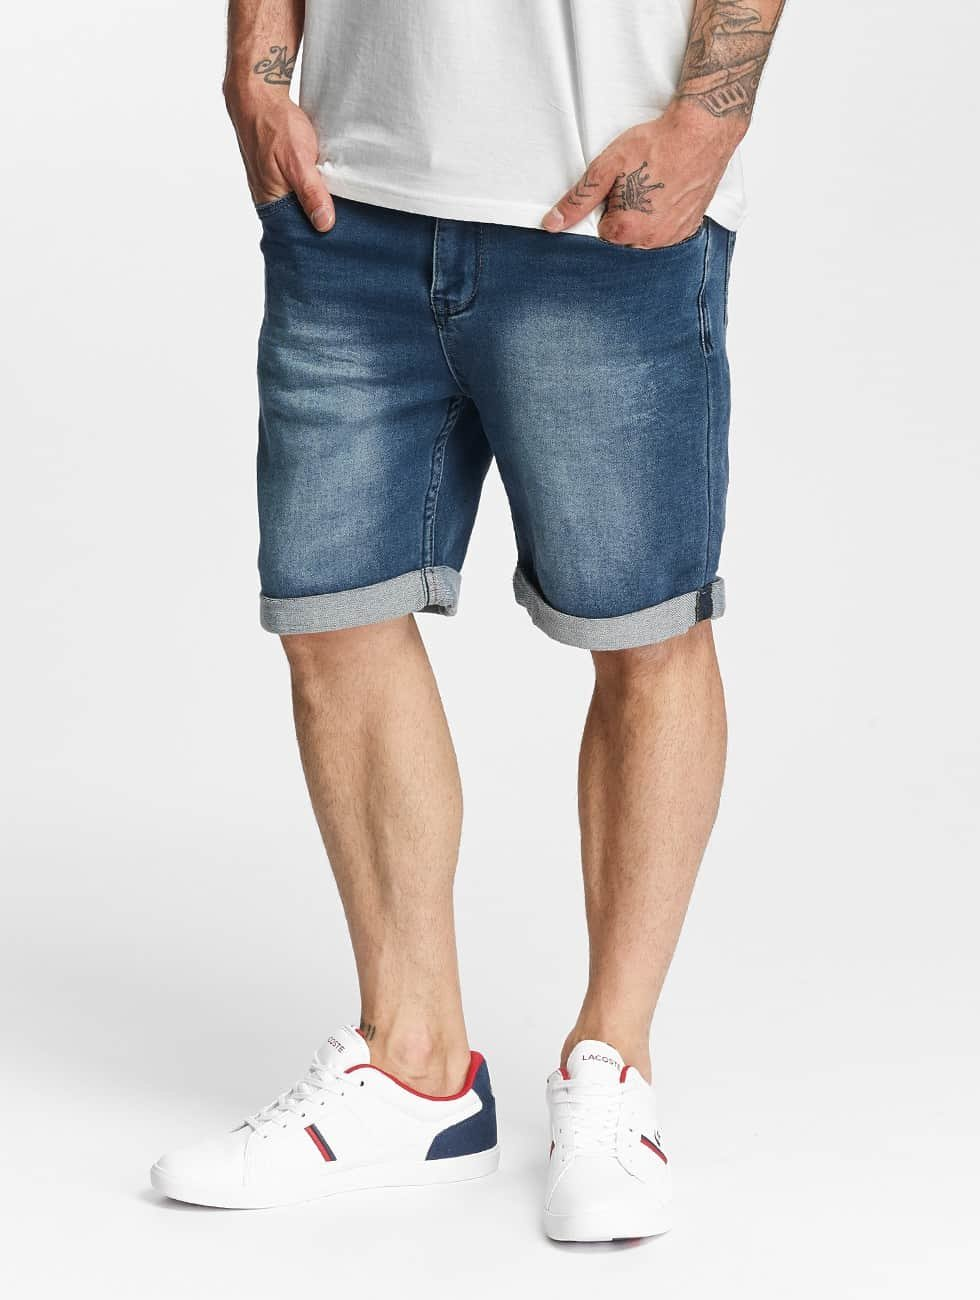 Authentic Style Jogg Denim Jeans Shorts Dark